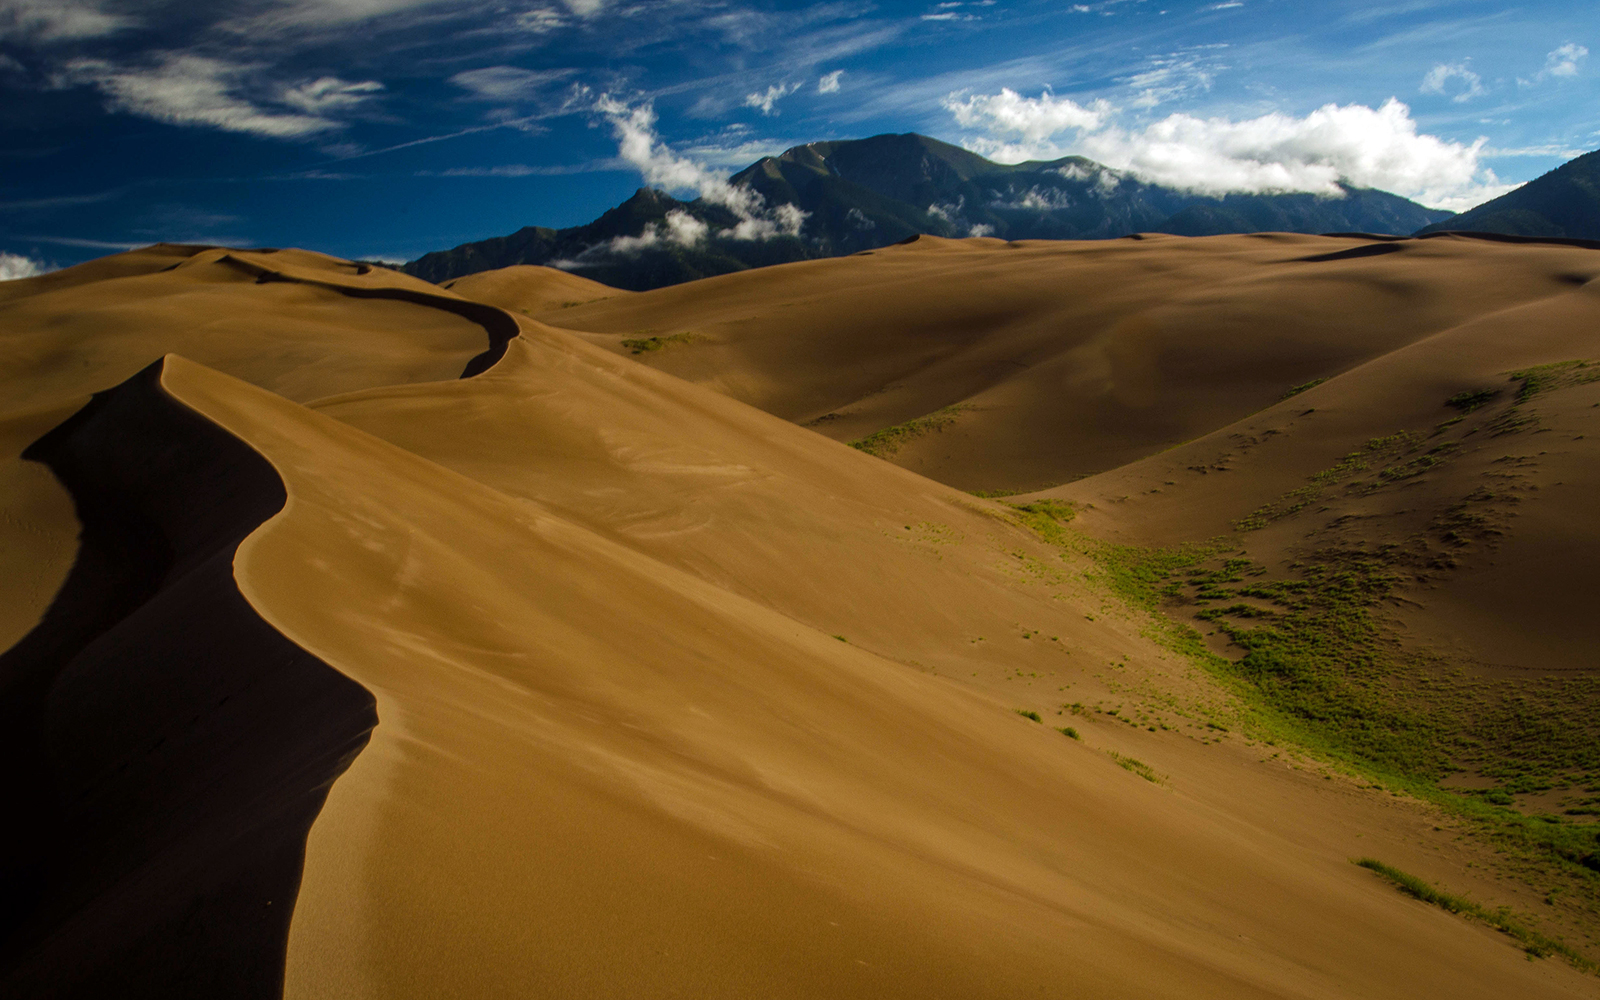 Best for Adventurous Couples: Great Sand Dunes, Colorado